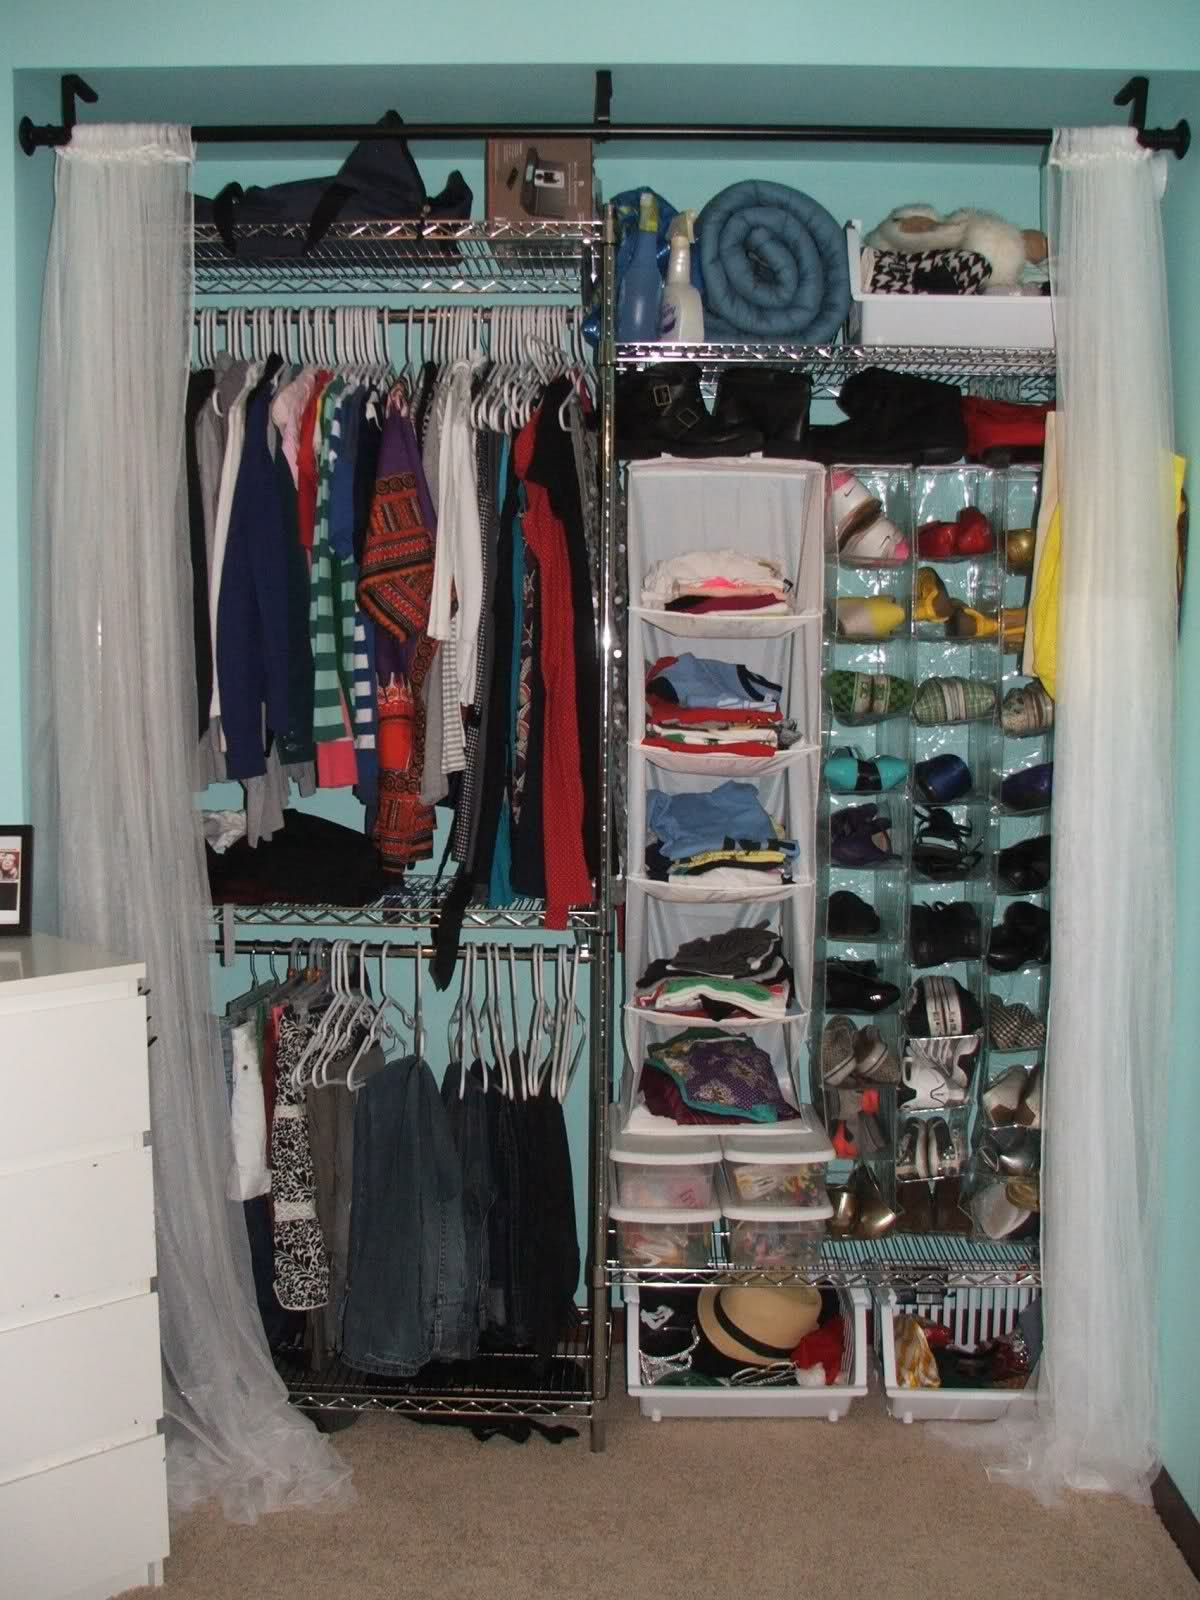 Dorm Room organization Tip since Dorm Closets are Significantly Smaller Than